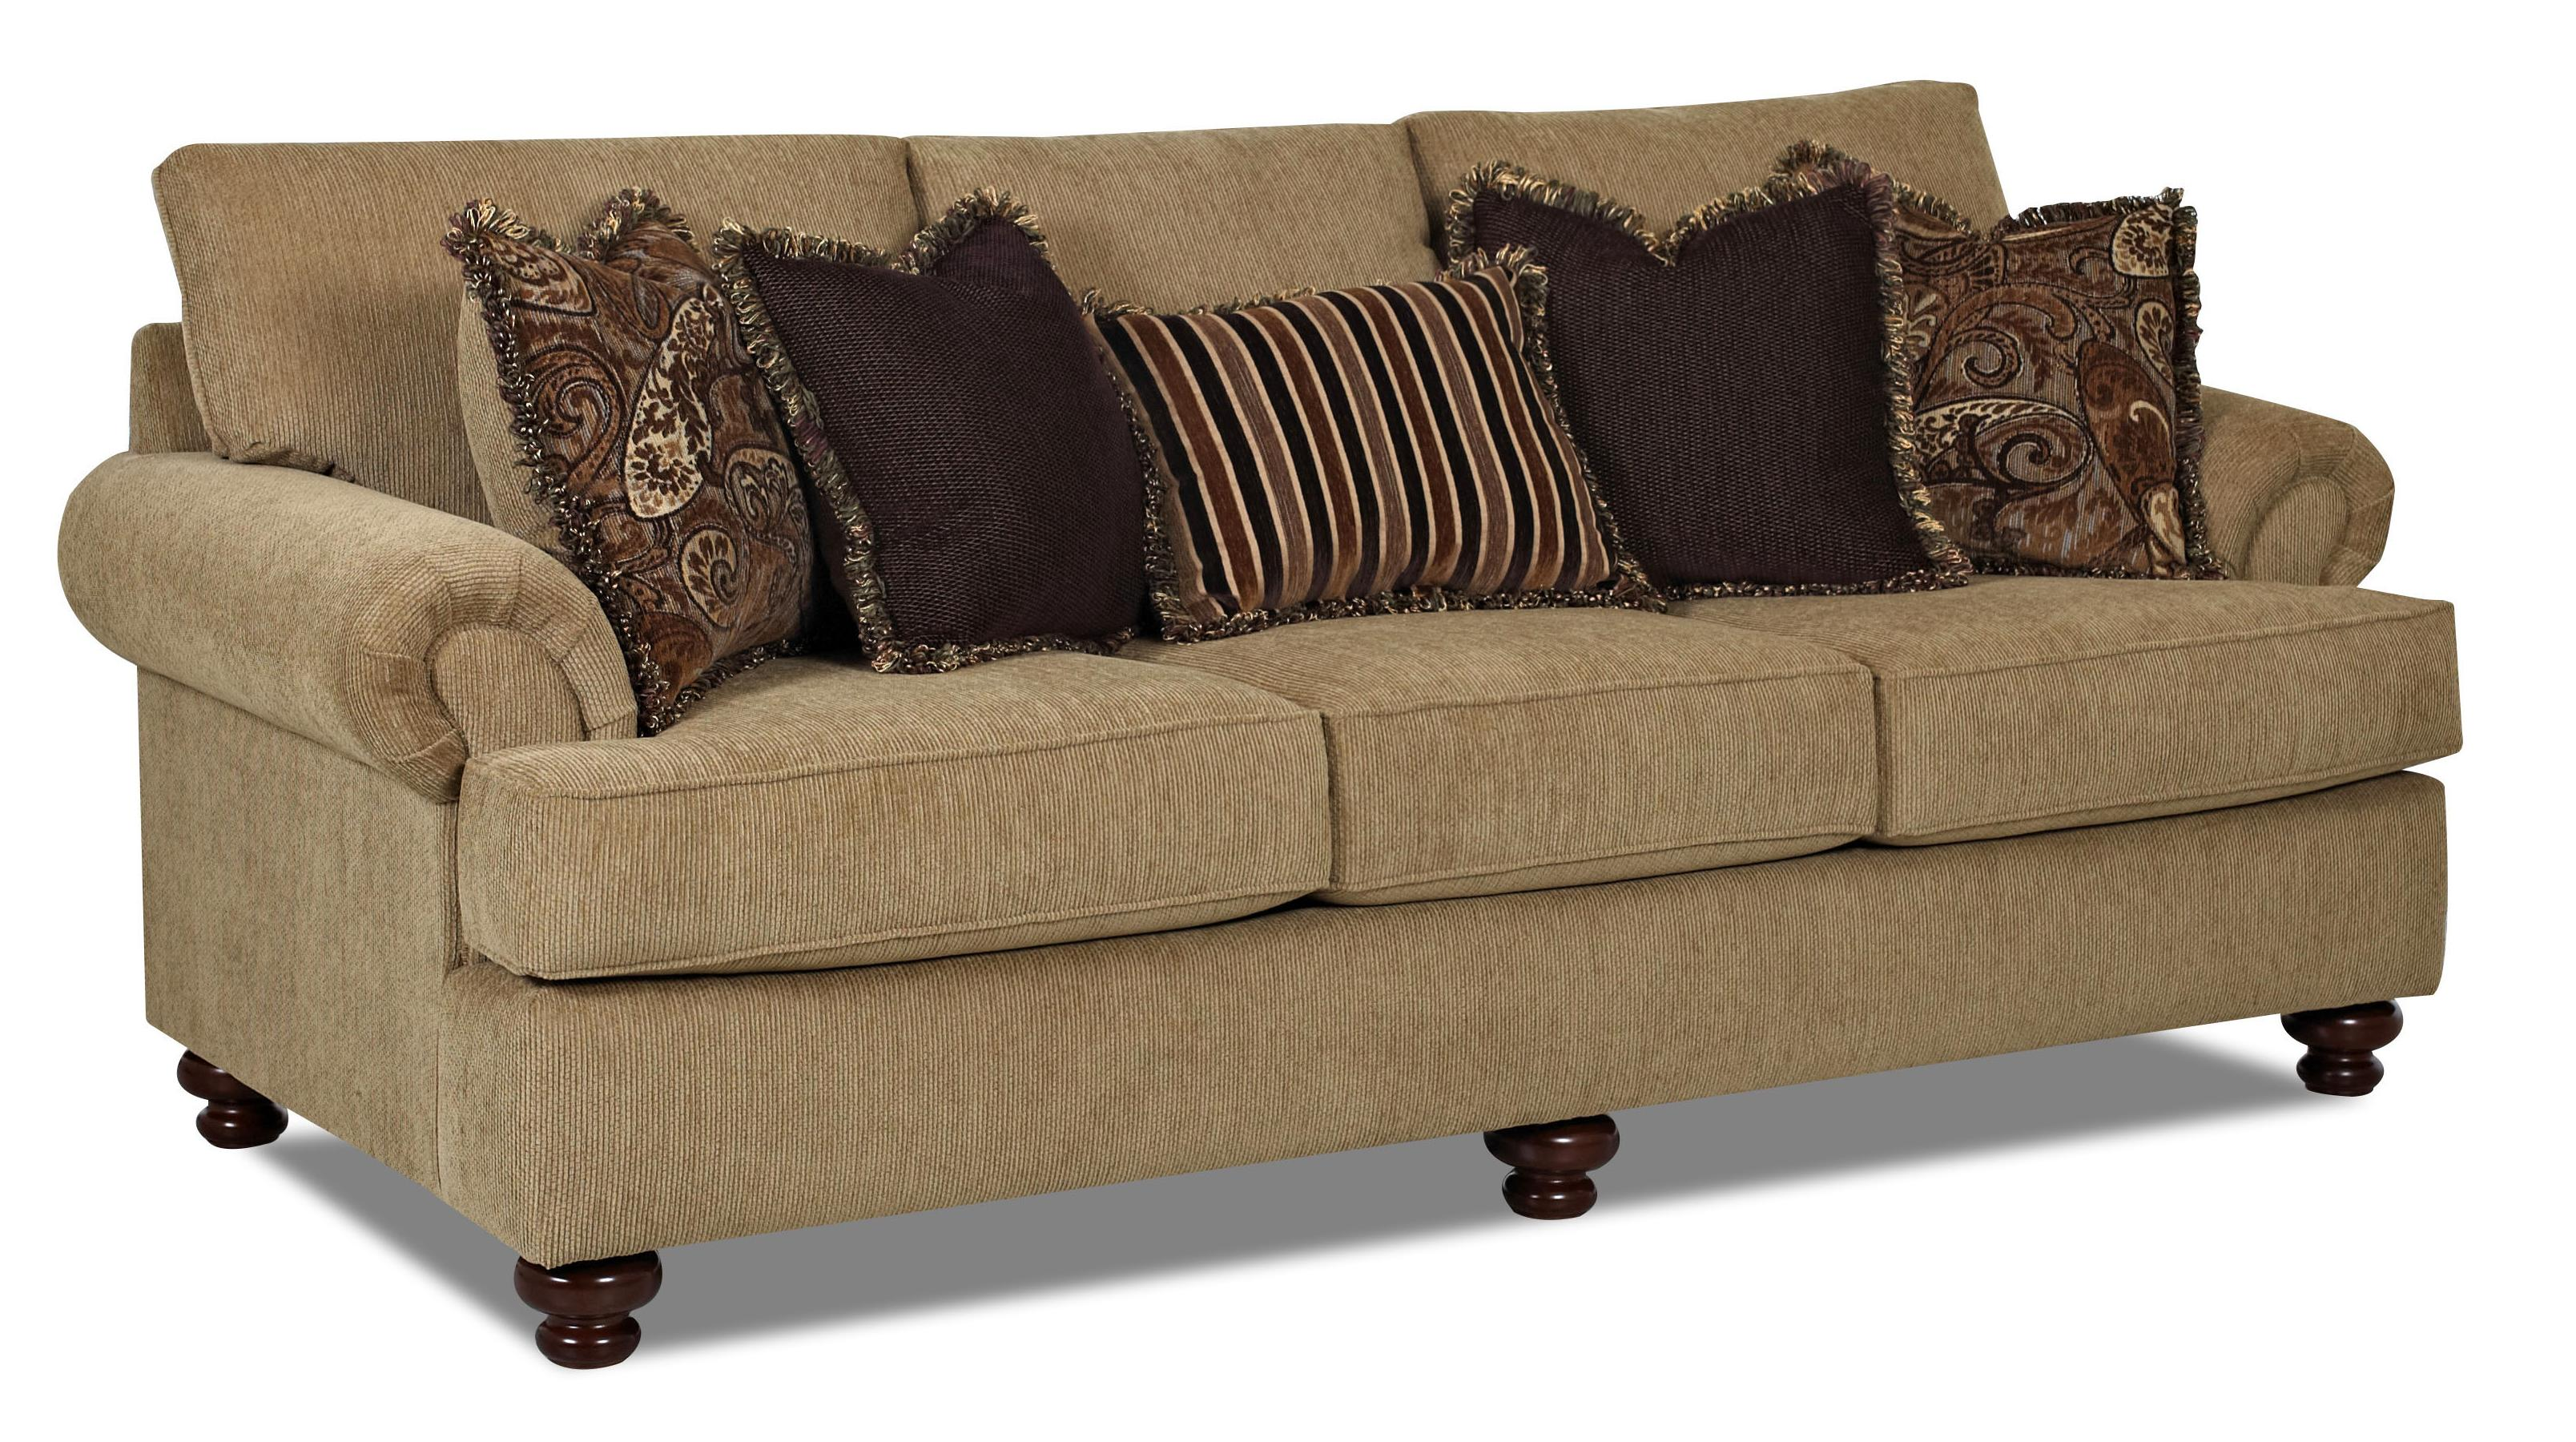 Klaussner Greenvale Traditional Stationary Sofa With